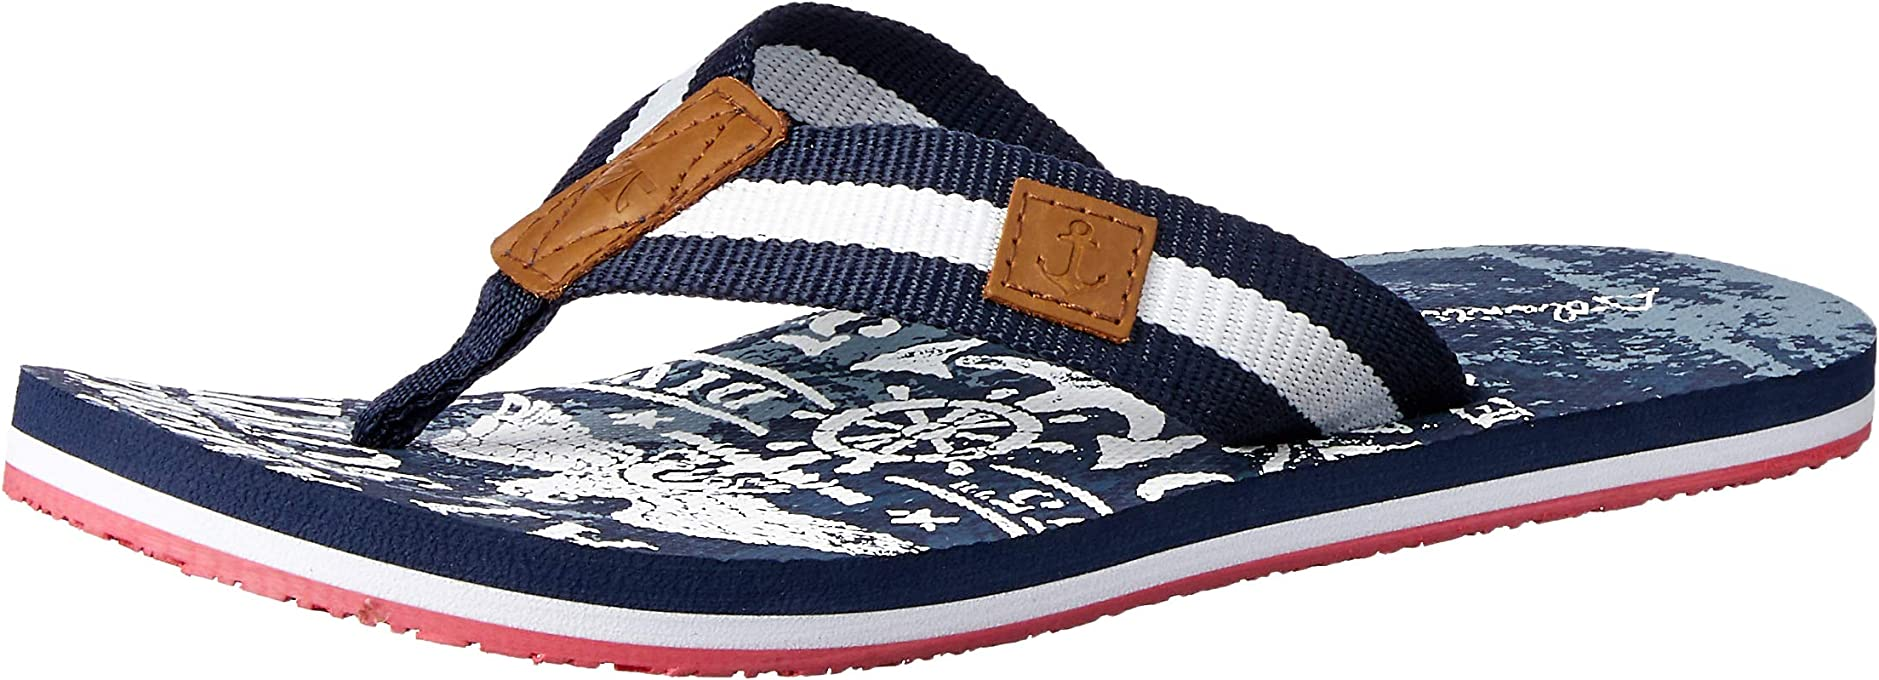 Atlantis Shoes Men's Navigation Eagle Thong Sandals